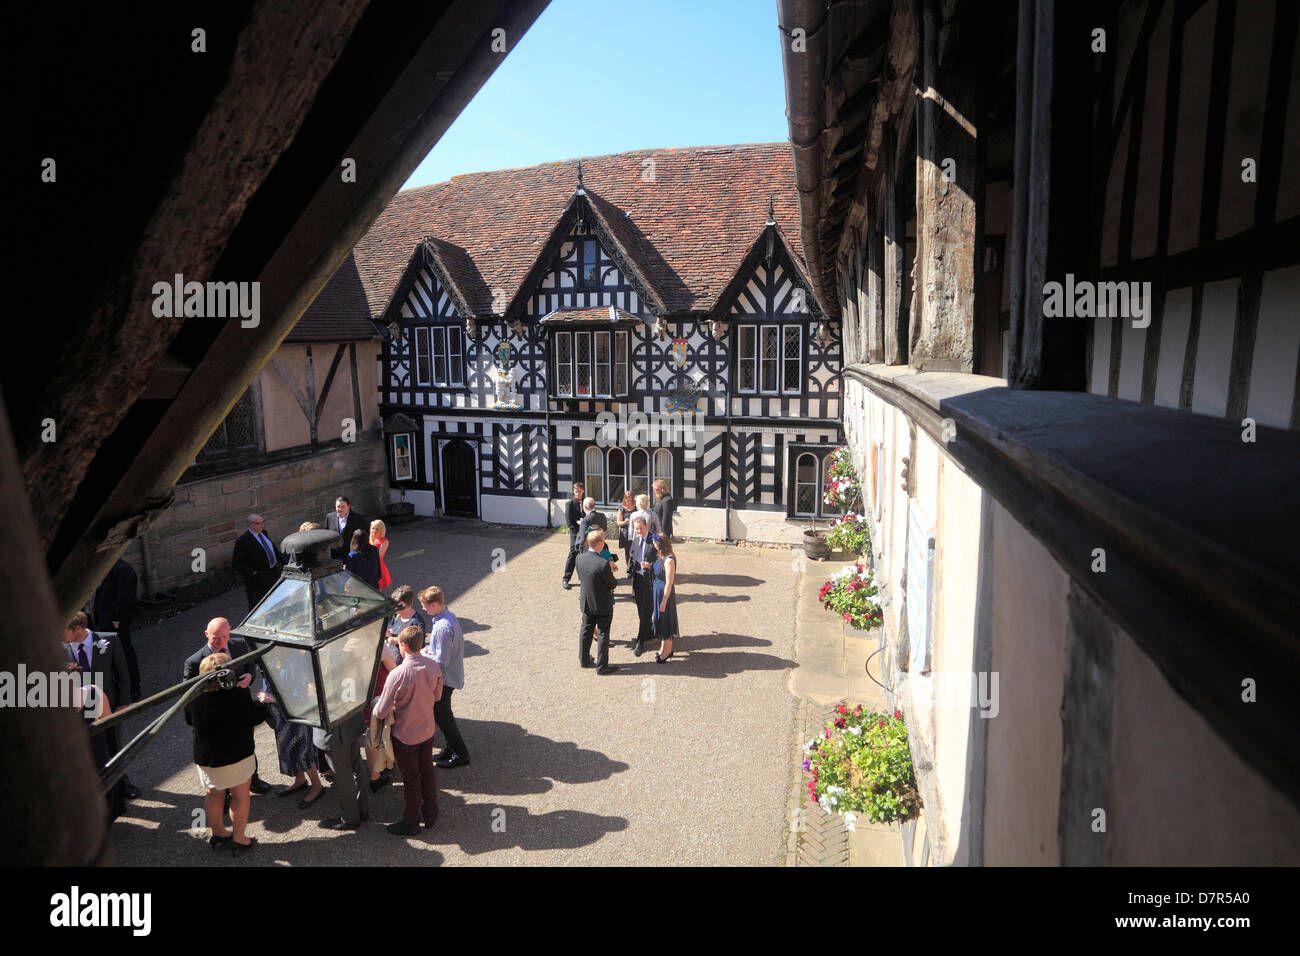 Courtyard of HIstorical Buildings at Warwick - Stock Image